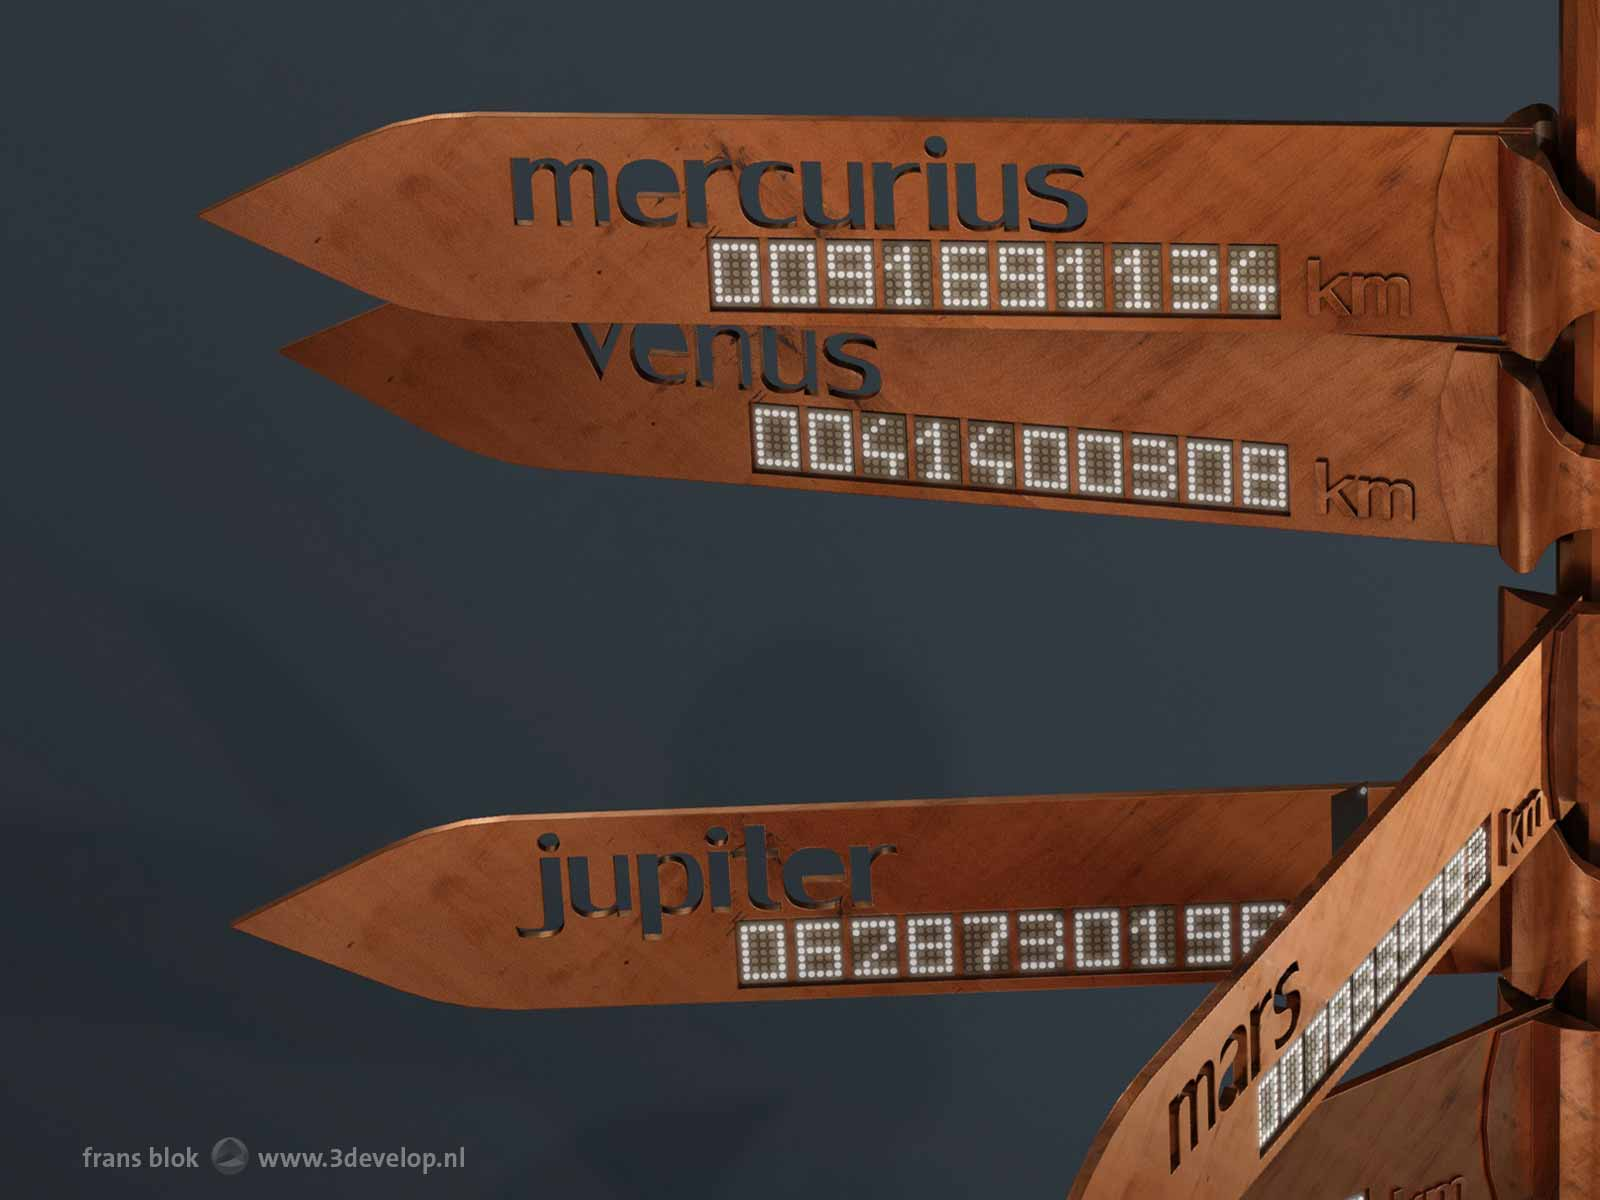 Detail of a planetary road sign, showing the directions and distances to Mercury, Venus, Jupiter and Mars